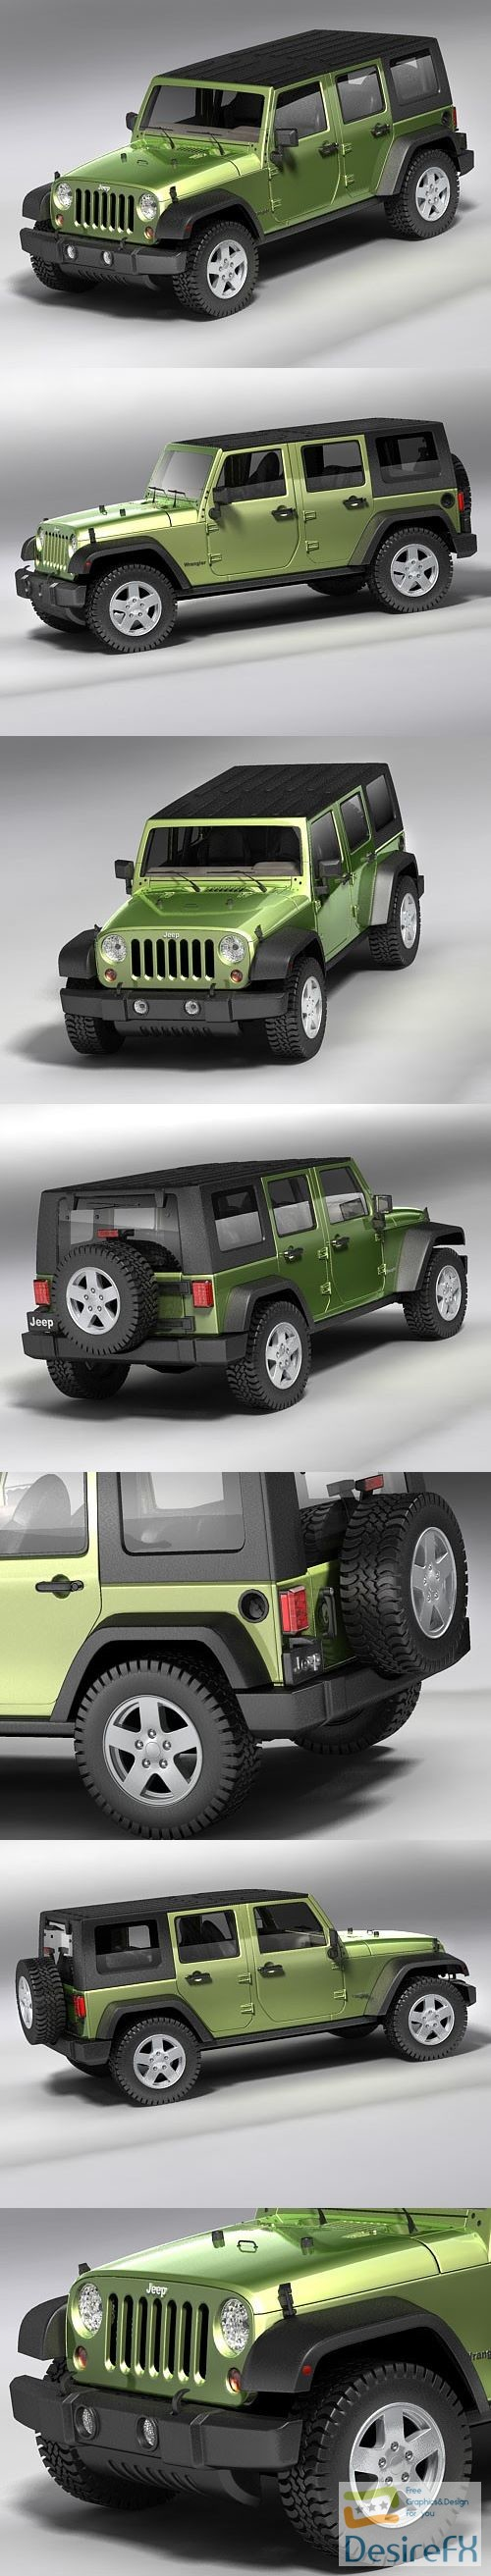 3d-models - Jeep Wrangler Unlimited 2008 3D Model